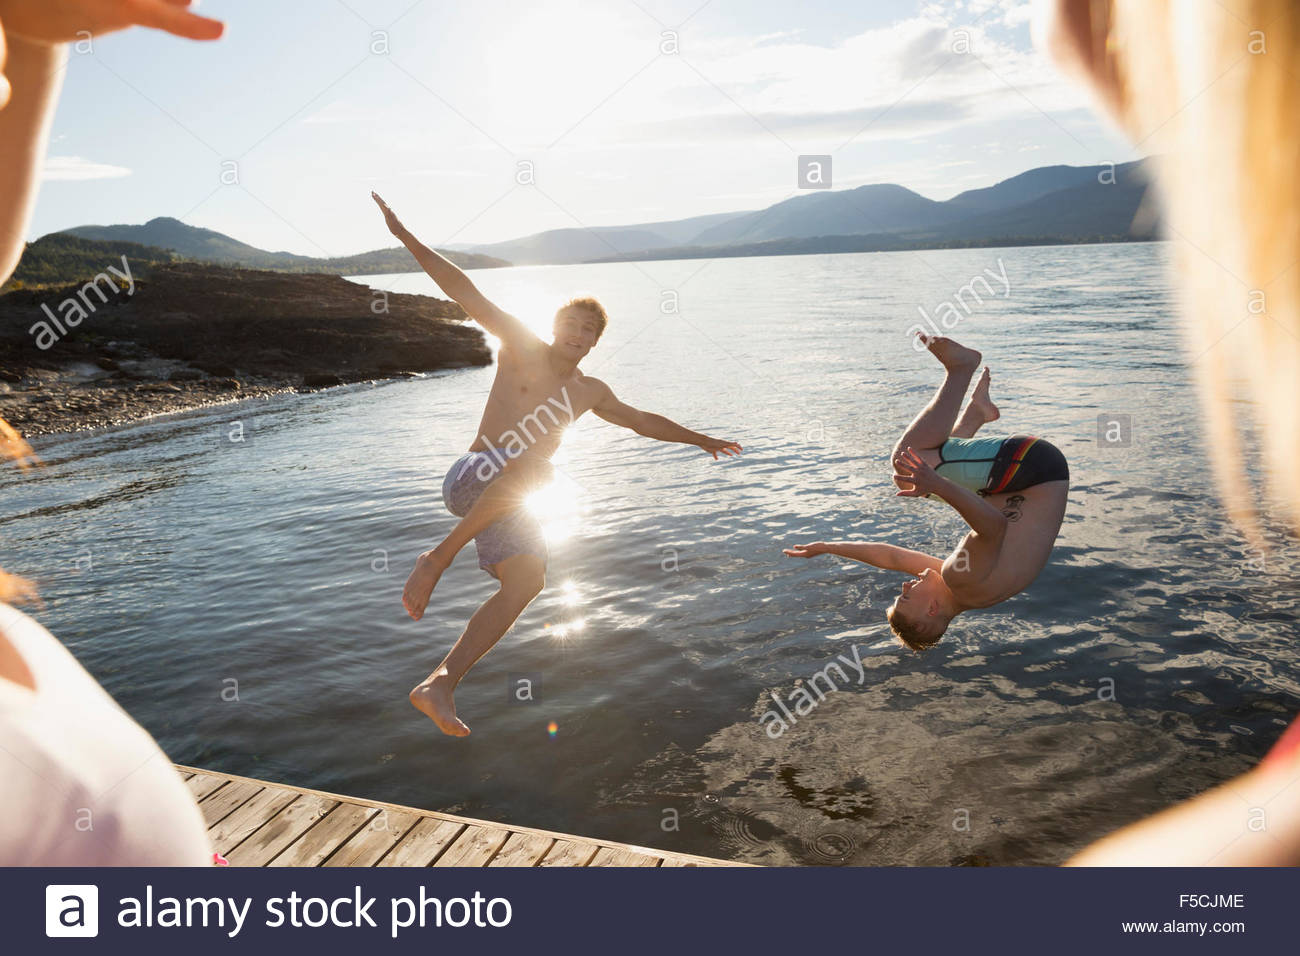 Young women watching men jump into lake - Stock Image